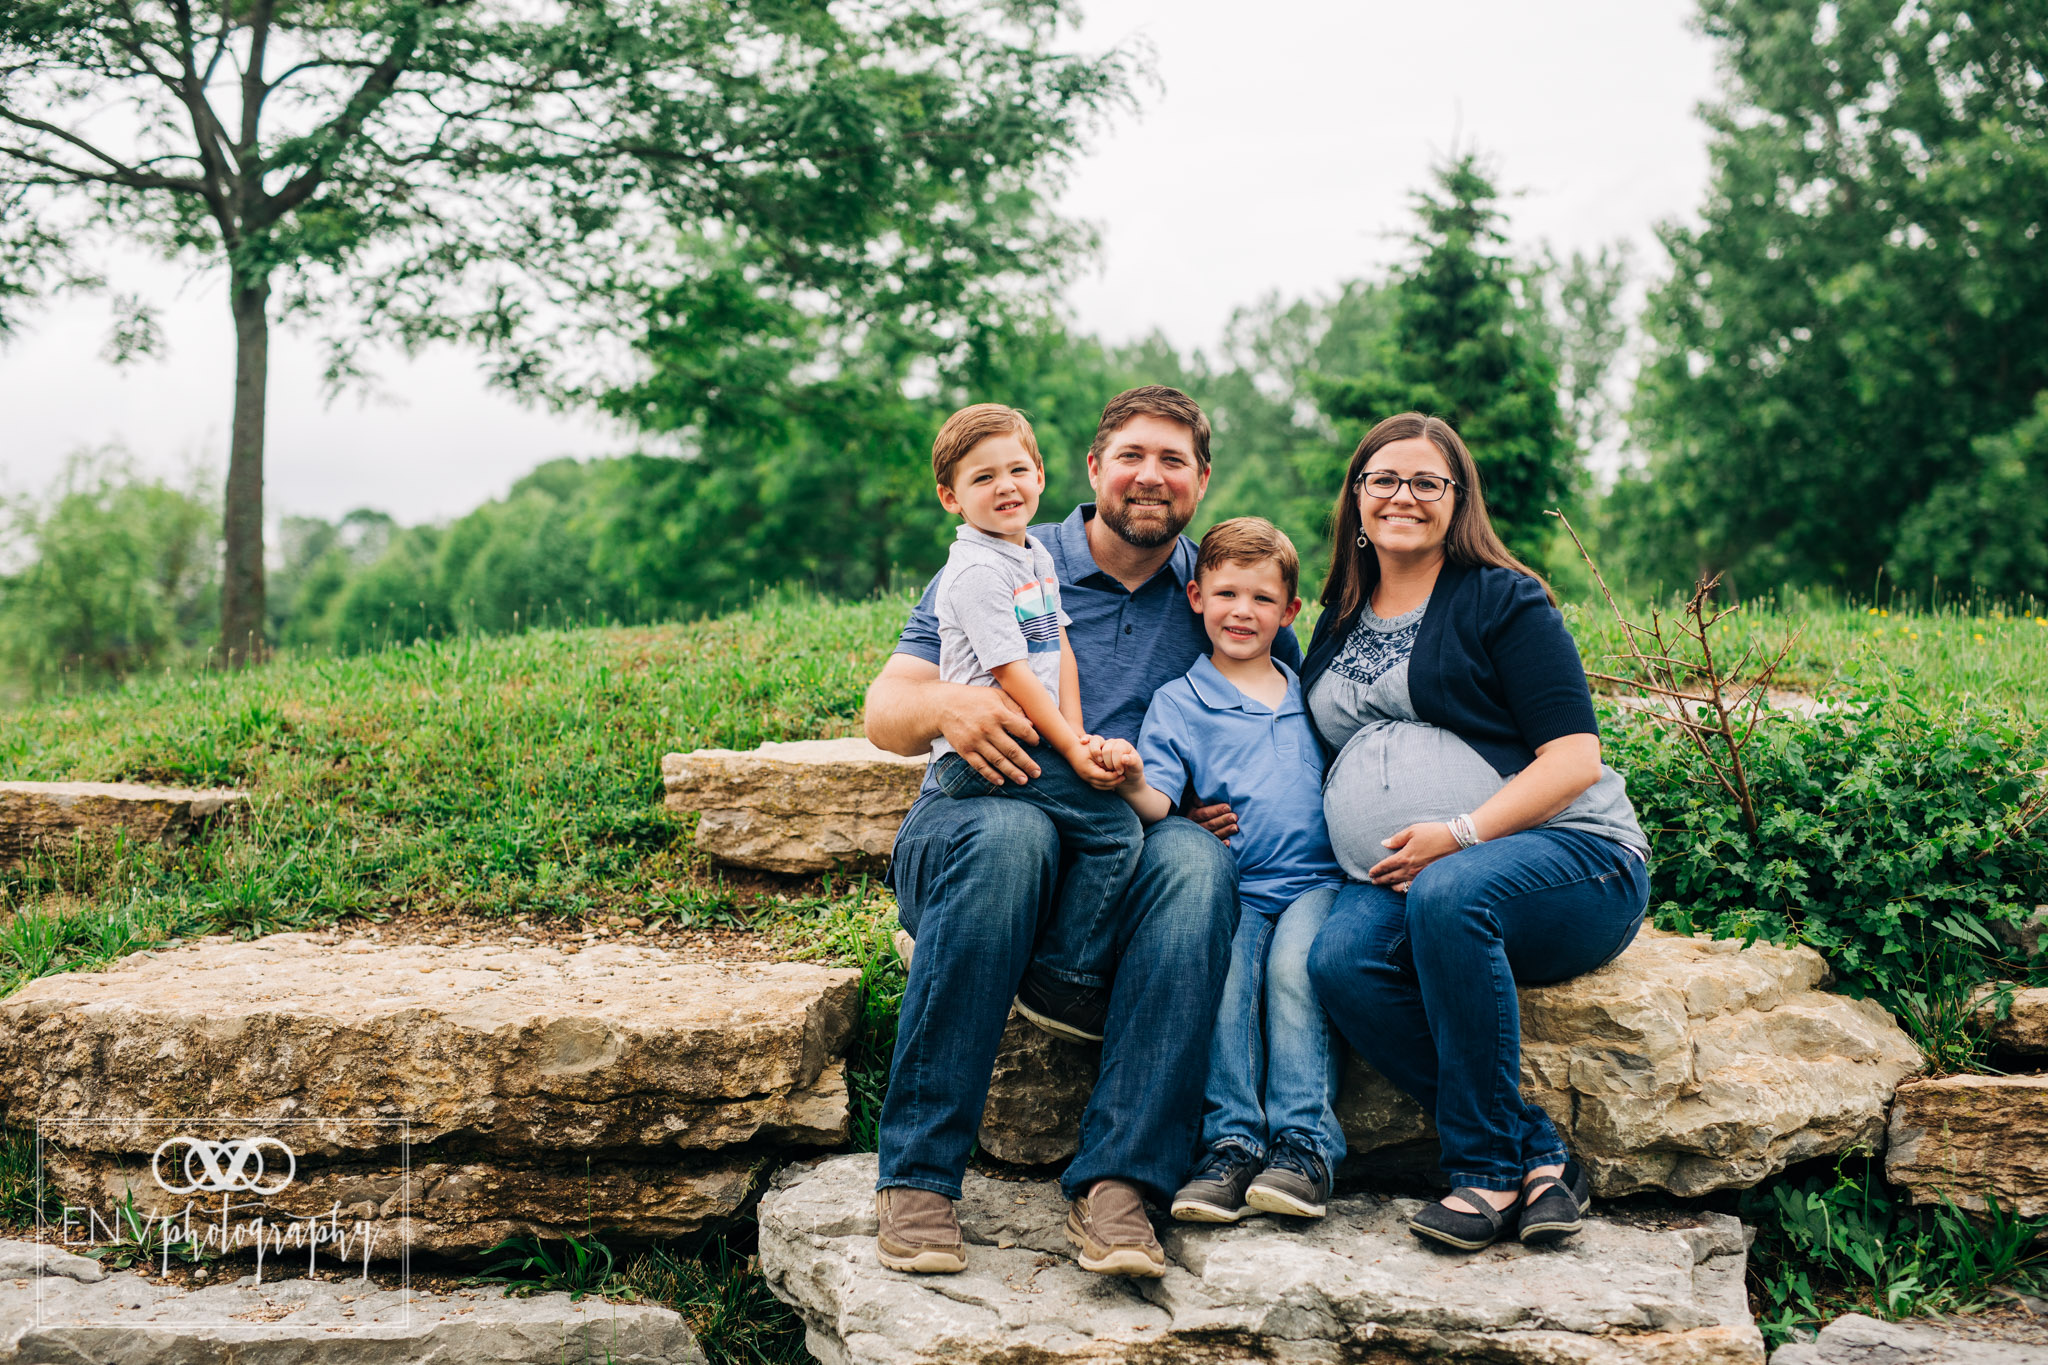 Mount Vernon Columbus Newark Ohio family maternity photographer (11).jpg